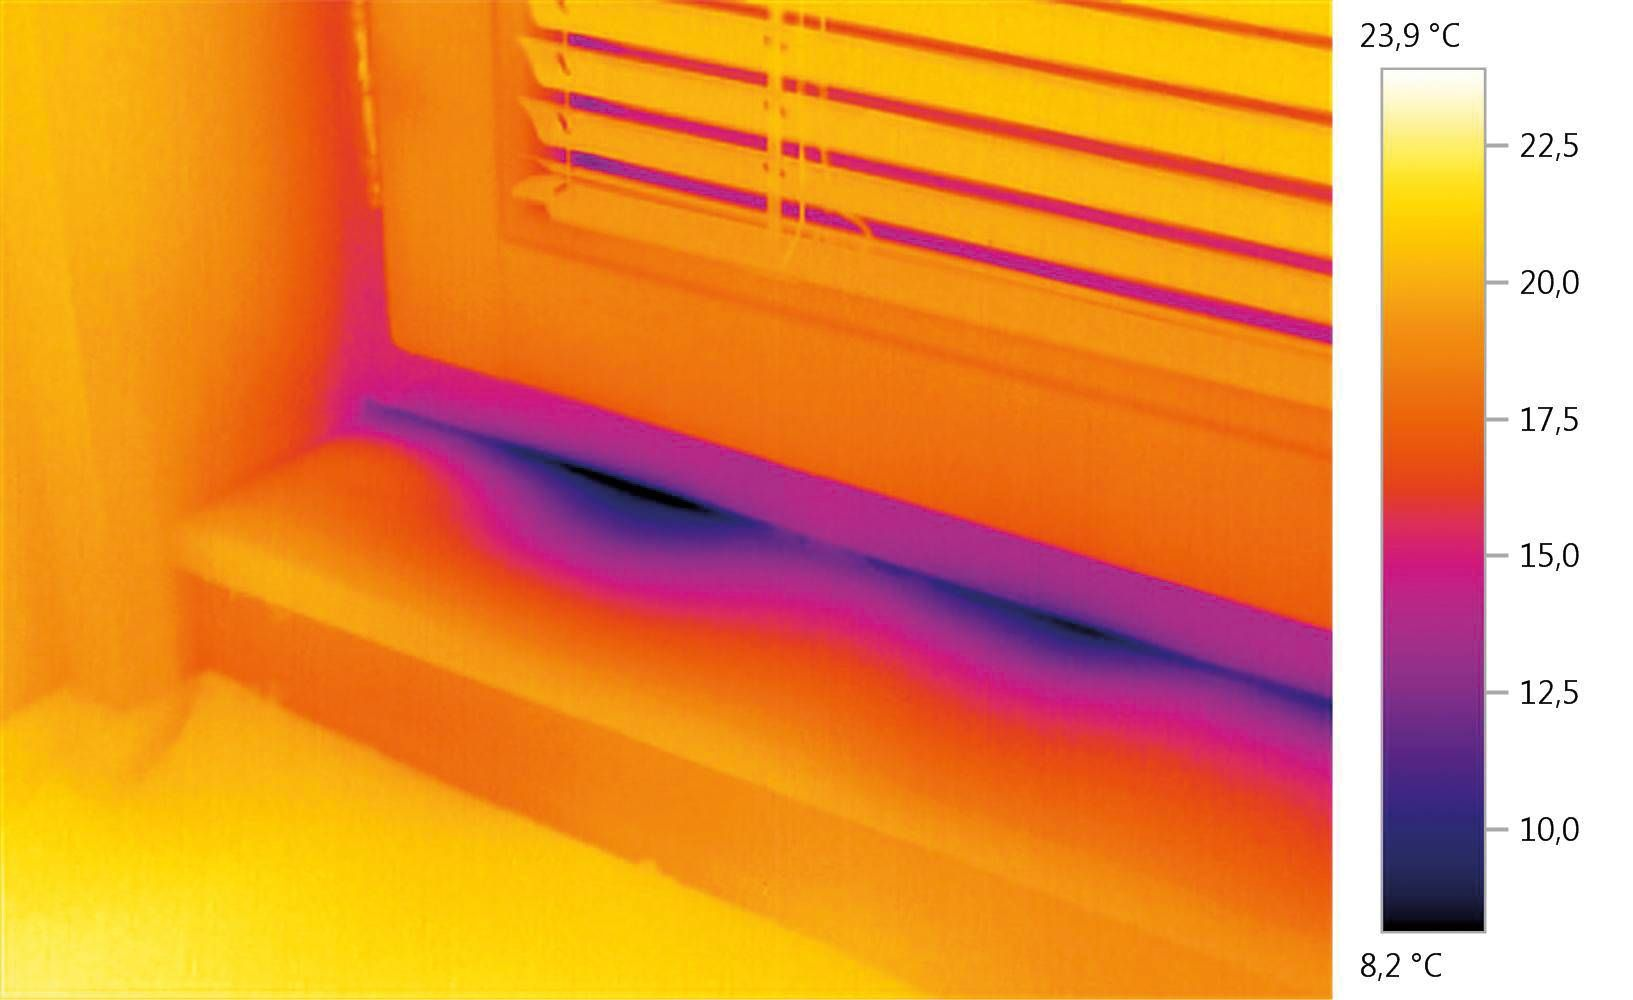 cn_applications_hvacr_thermography_building_door.jpg